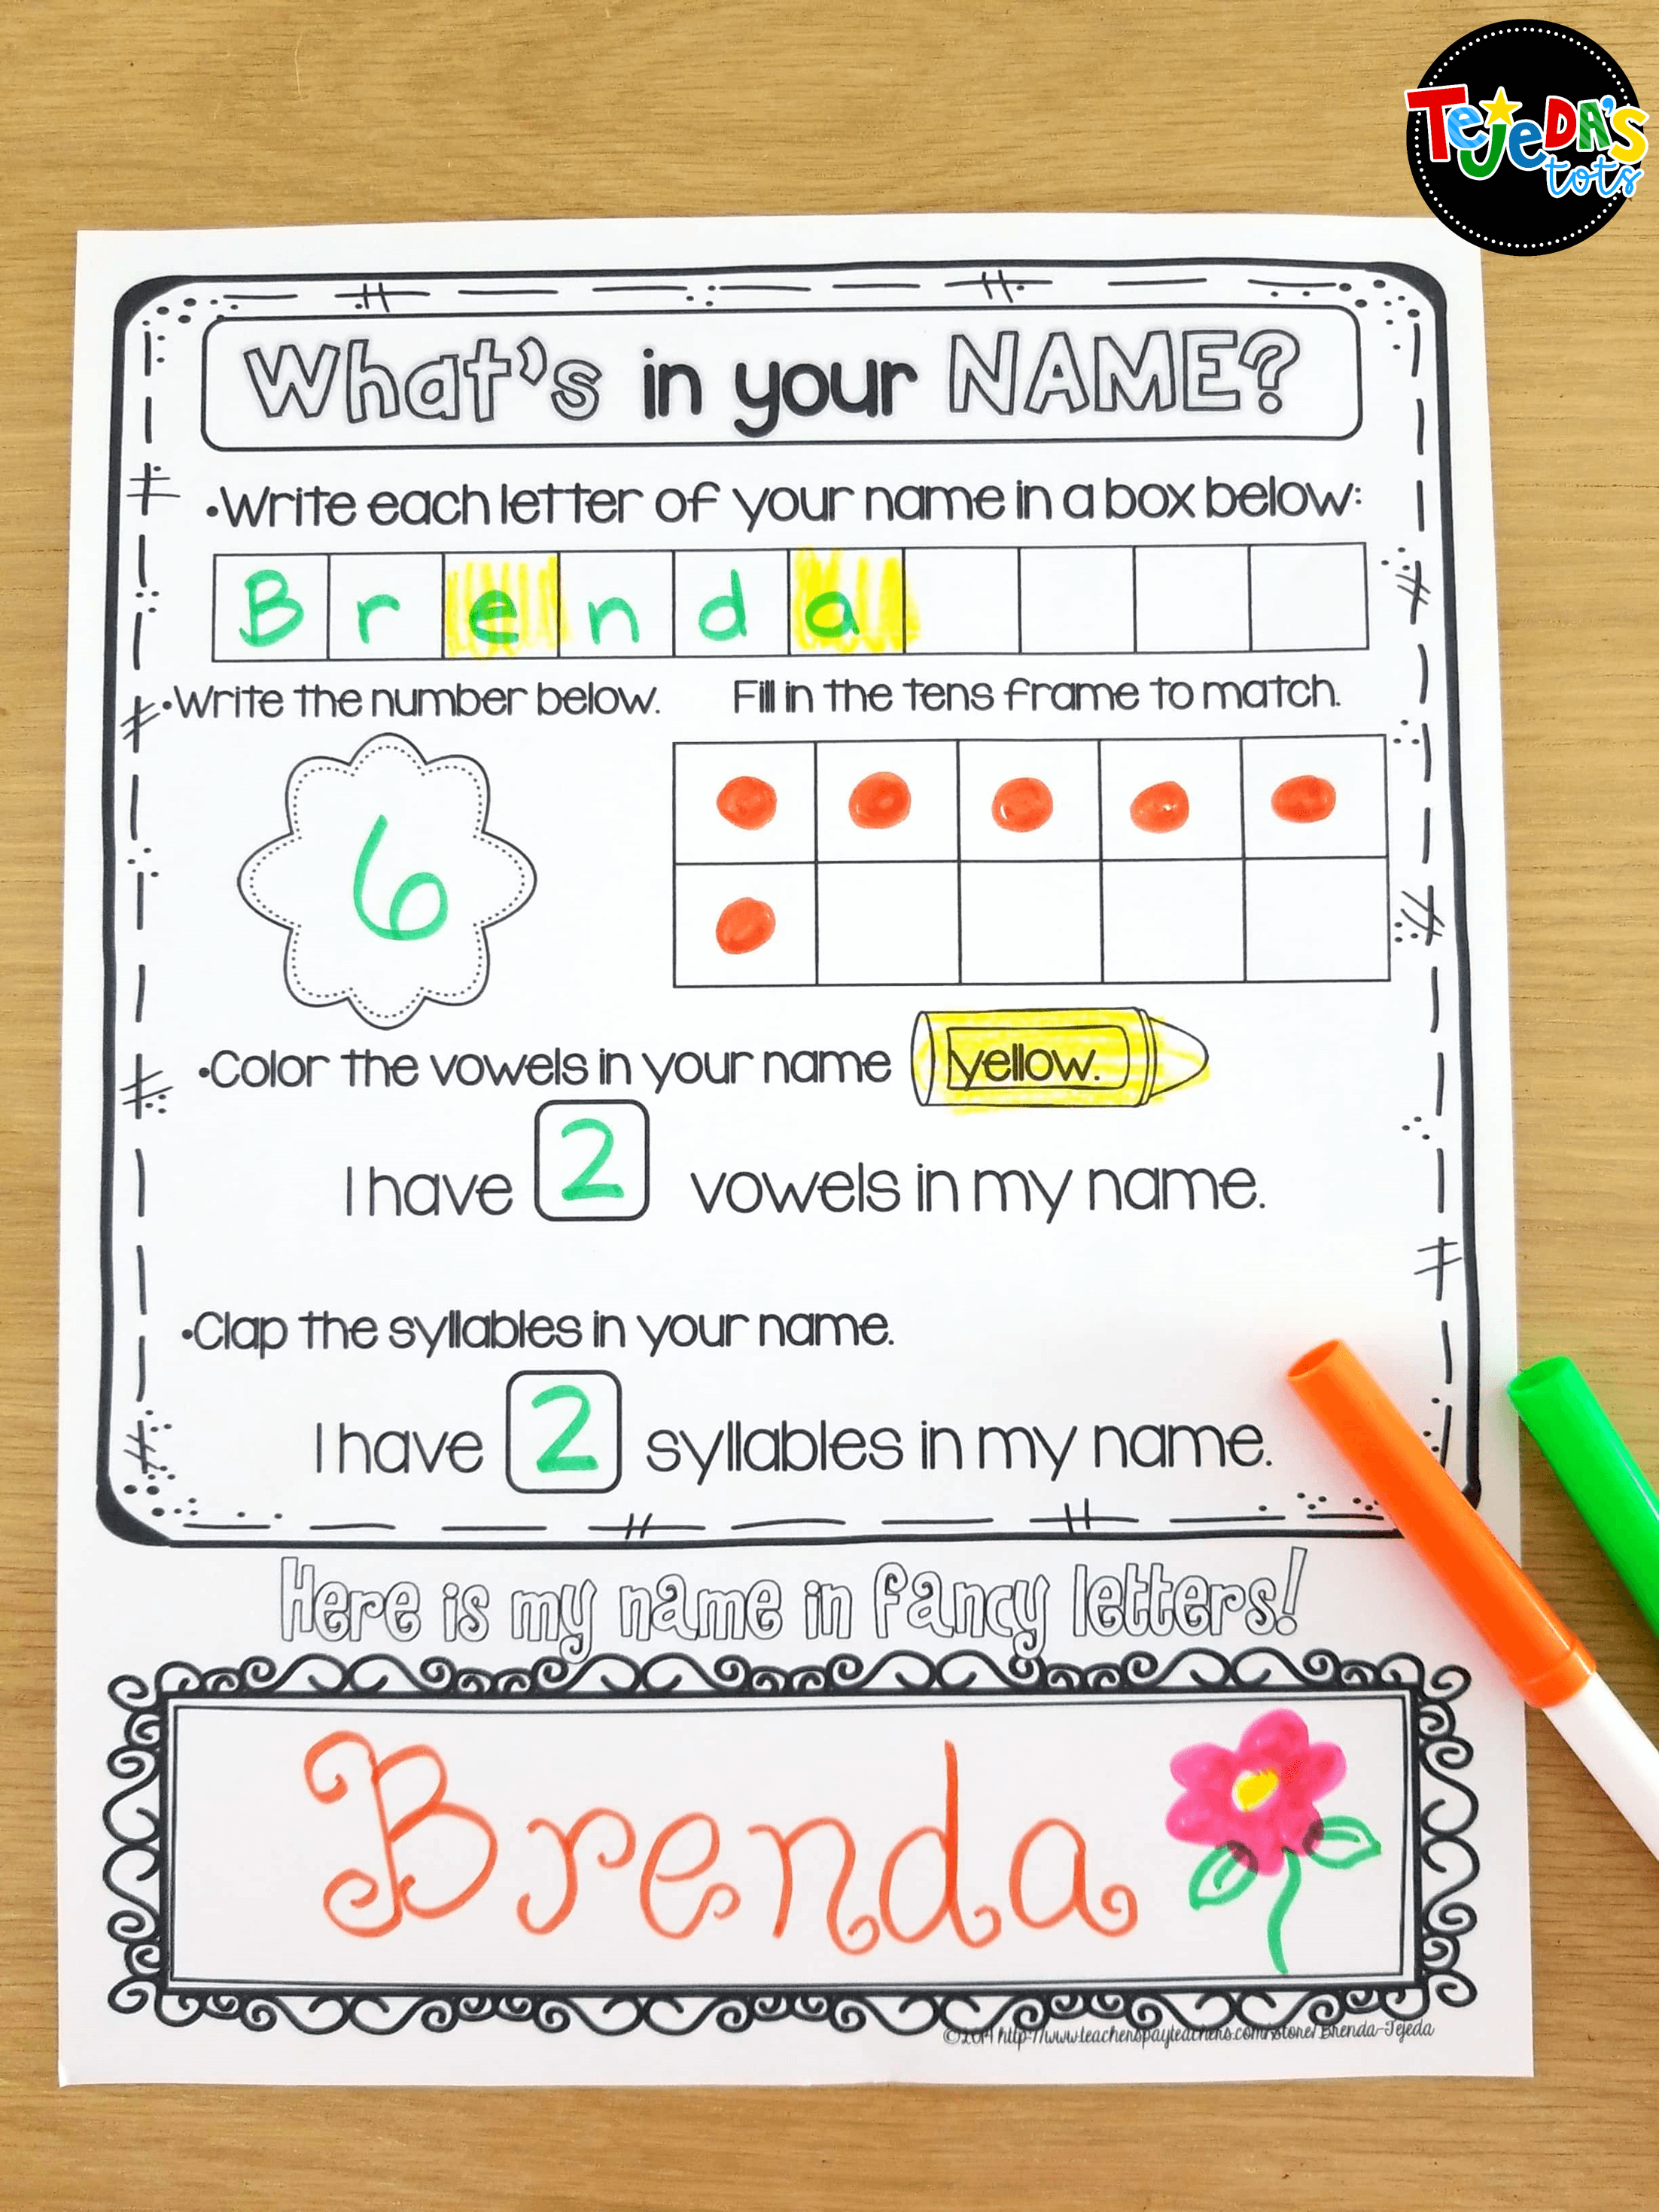 Free name printables to go with the book Chrysanthemum by Kevin Henkes. This blog post has ideas for what to do on the first day of school and includes freebies! #tejedastots #firstdayofschool